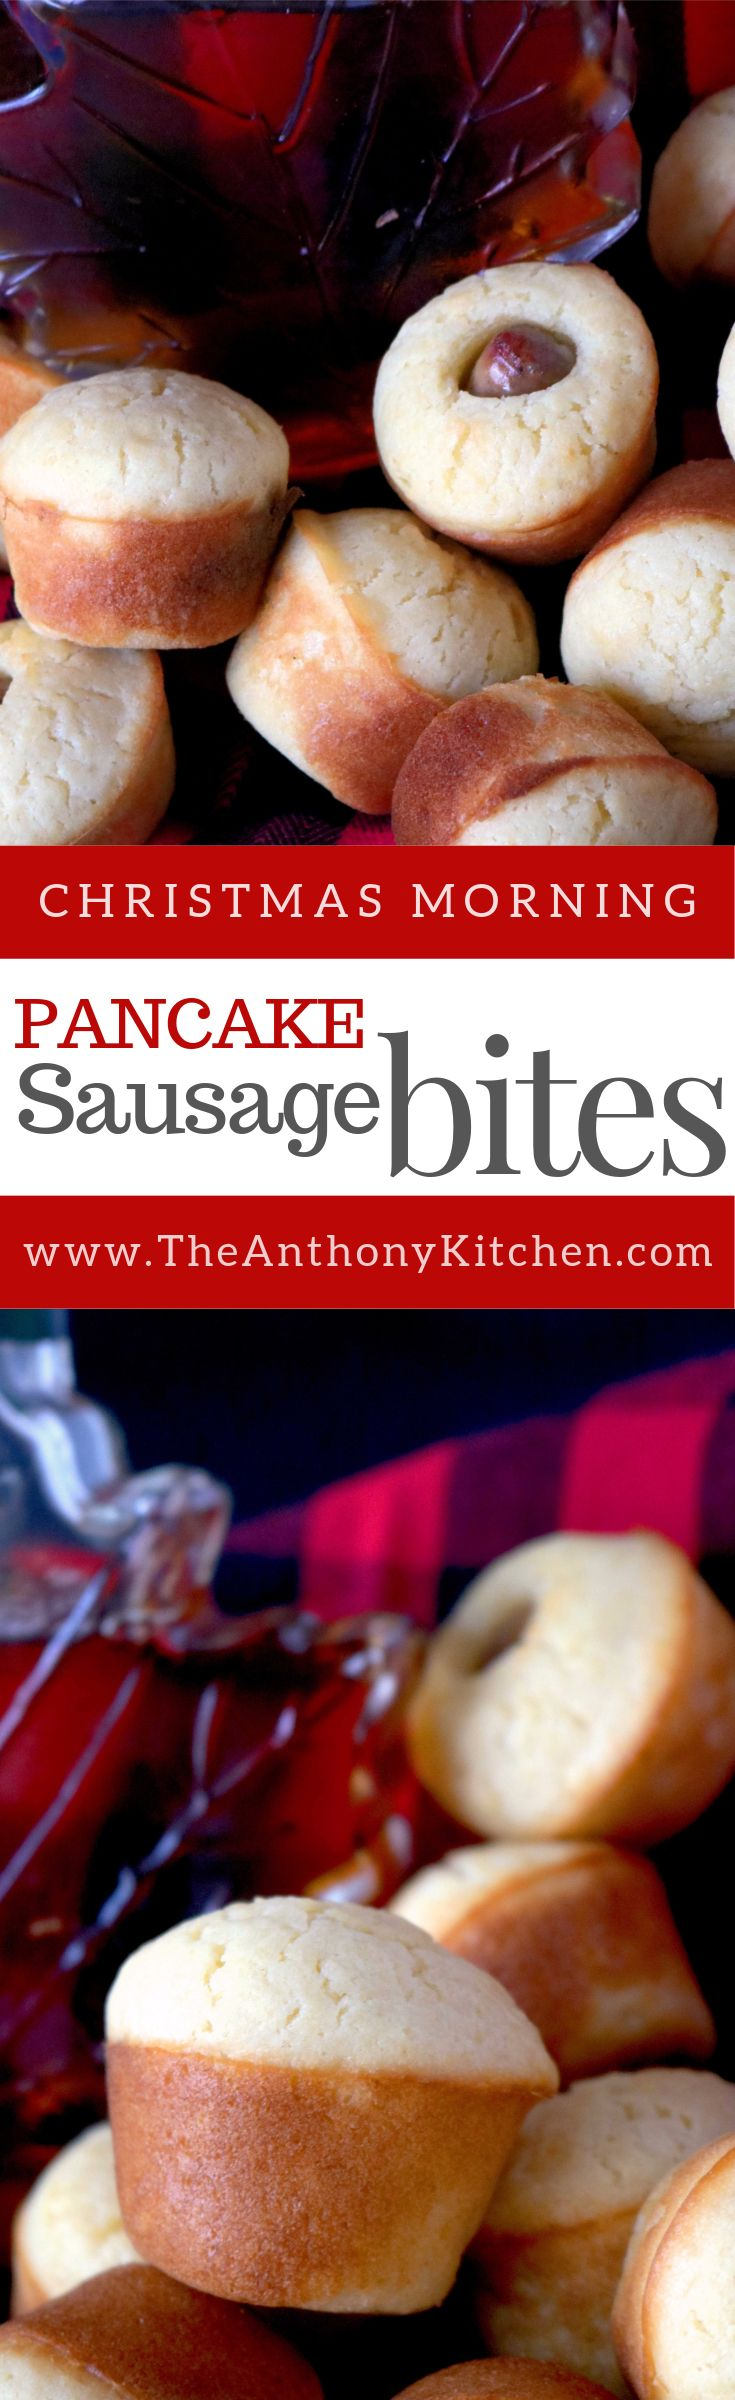 Pancake Sausage Bites | Kid-Friendly Christmas Breakfast Idea | A make-ahead, freezer-friendly breakfast recipe featuring homemade mini muffin pancakes with breakfast sausage links baked inside | #christmasbrunch #recipes #minimuffinpancakes #christmasmorningrecipe